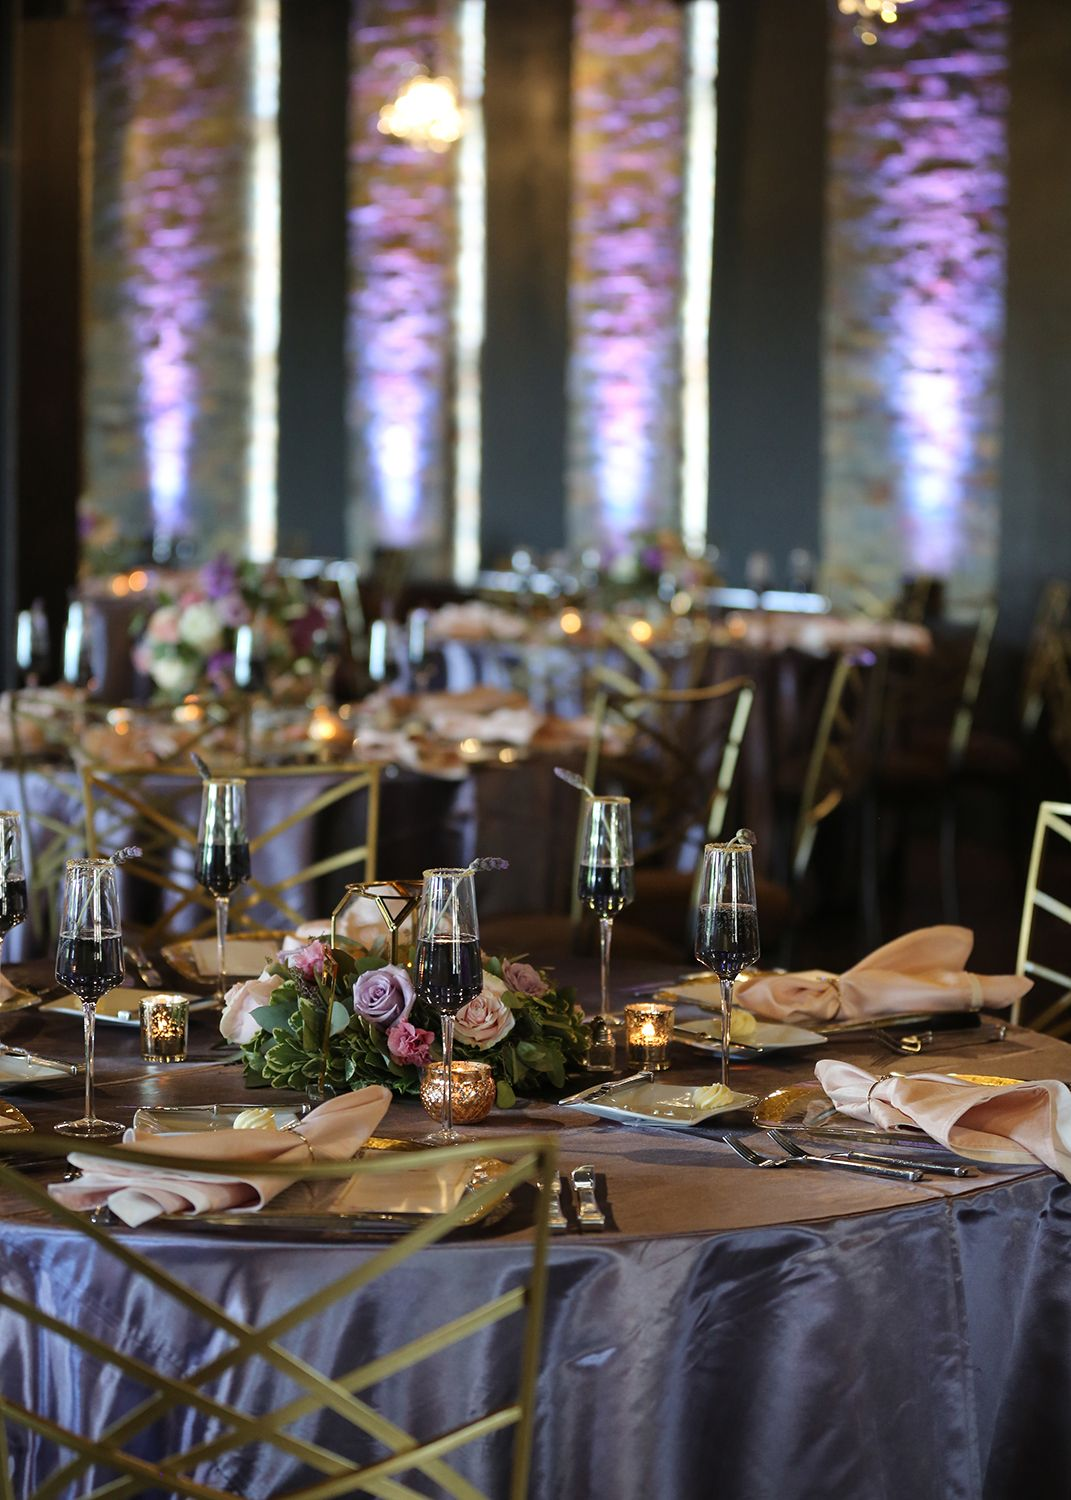 Rustic Wedding Reception Venue Indianapolis Indiana Tablescapes Decor And Floral